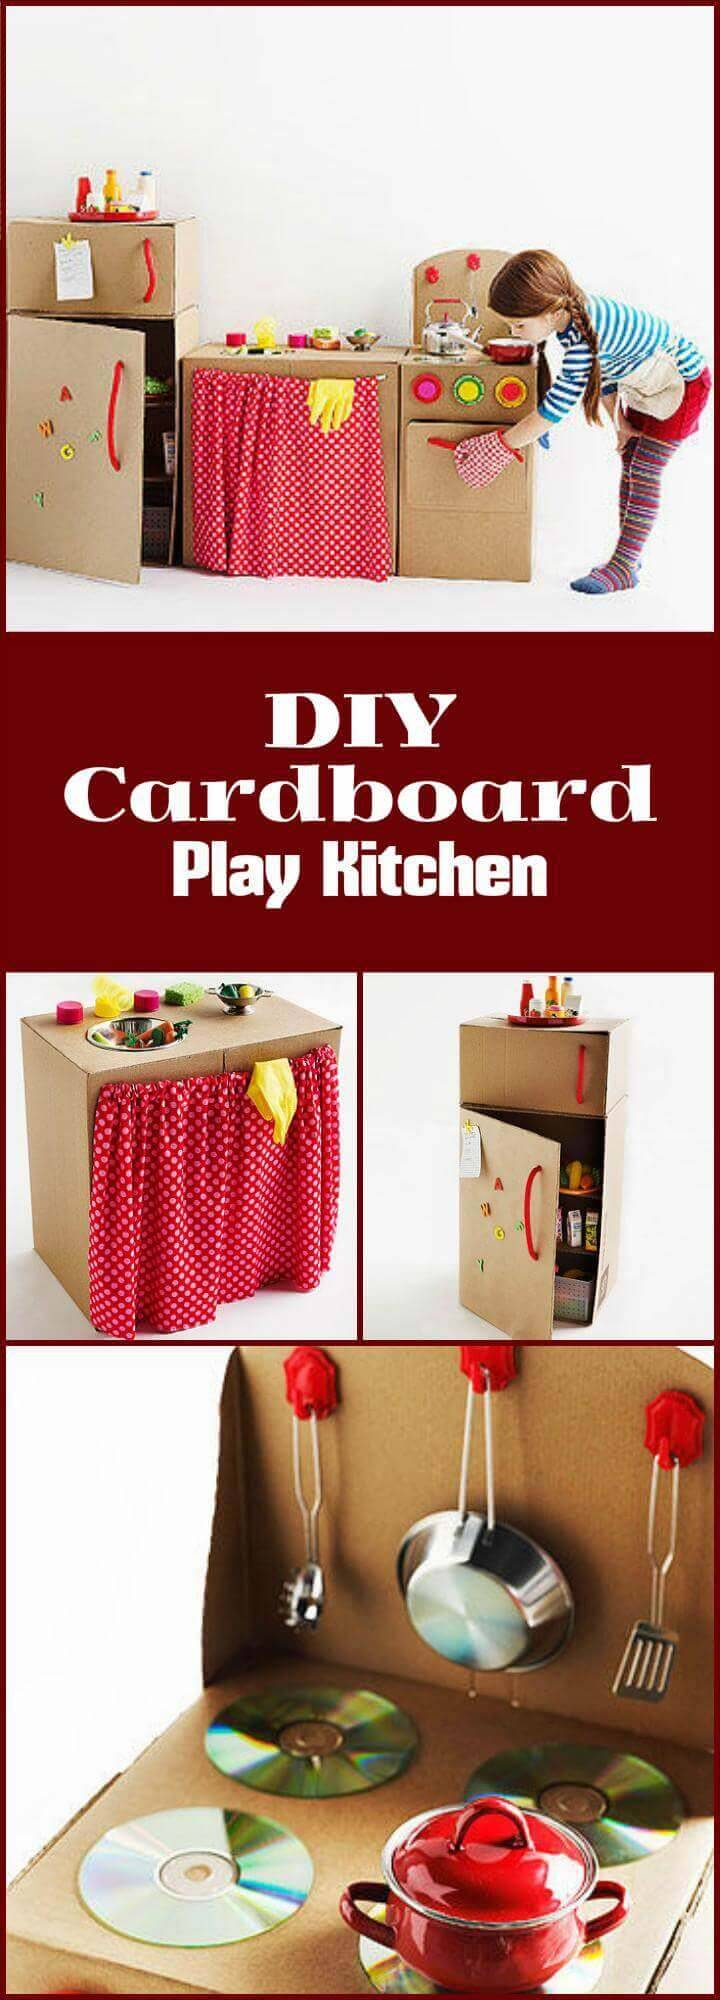 DIY beautiful cardboard play kitchen